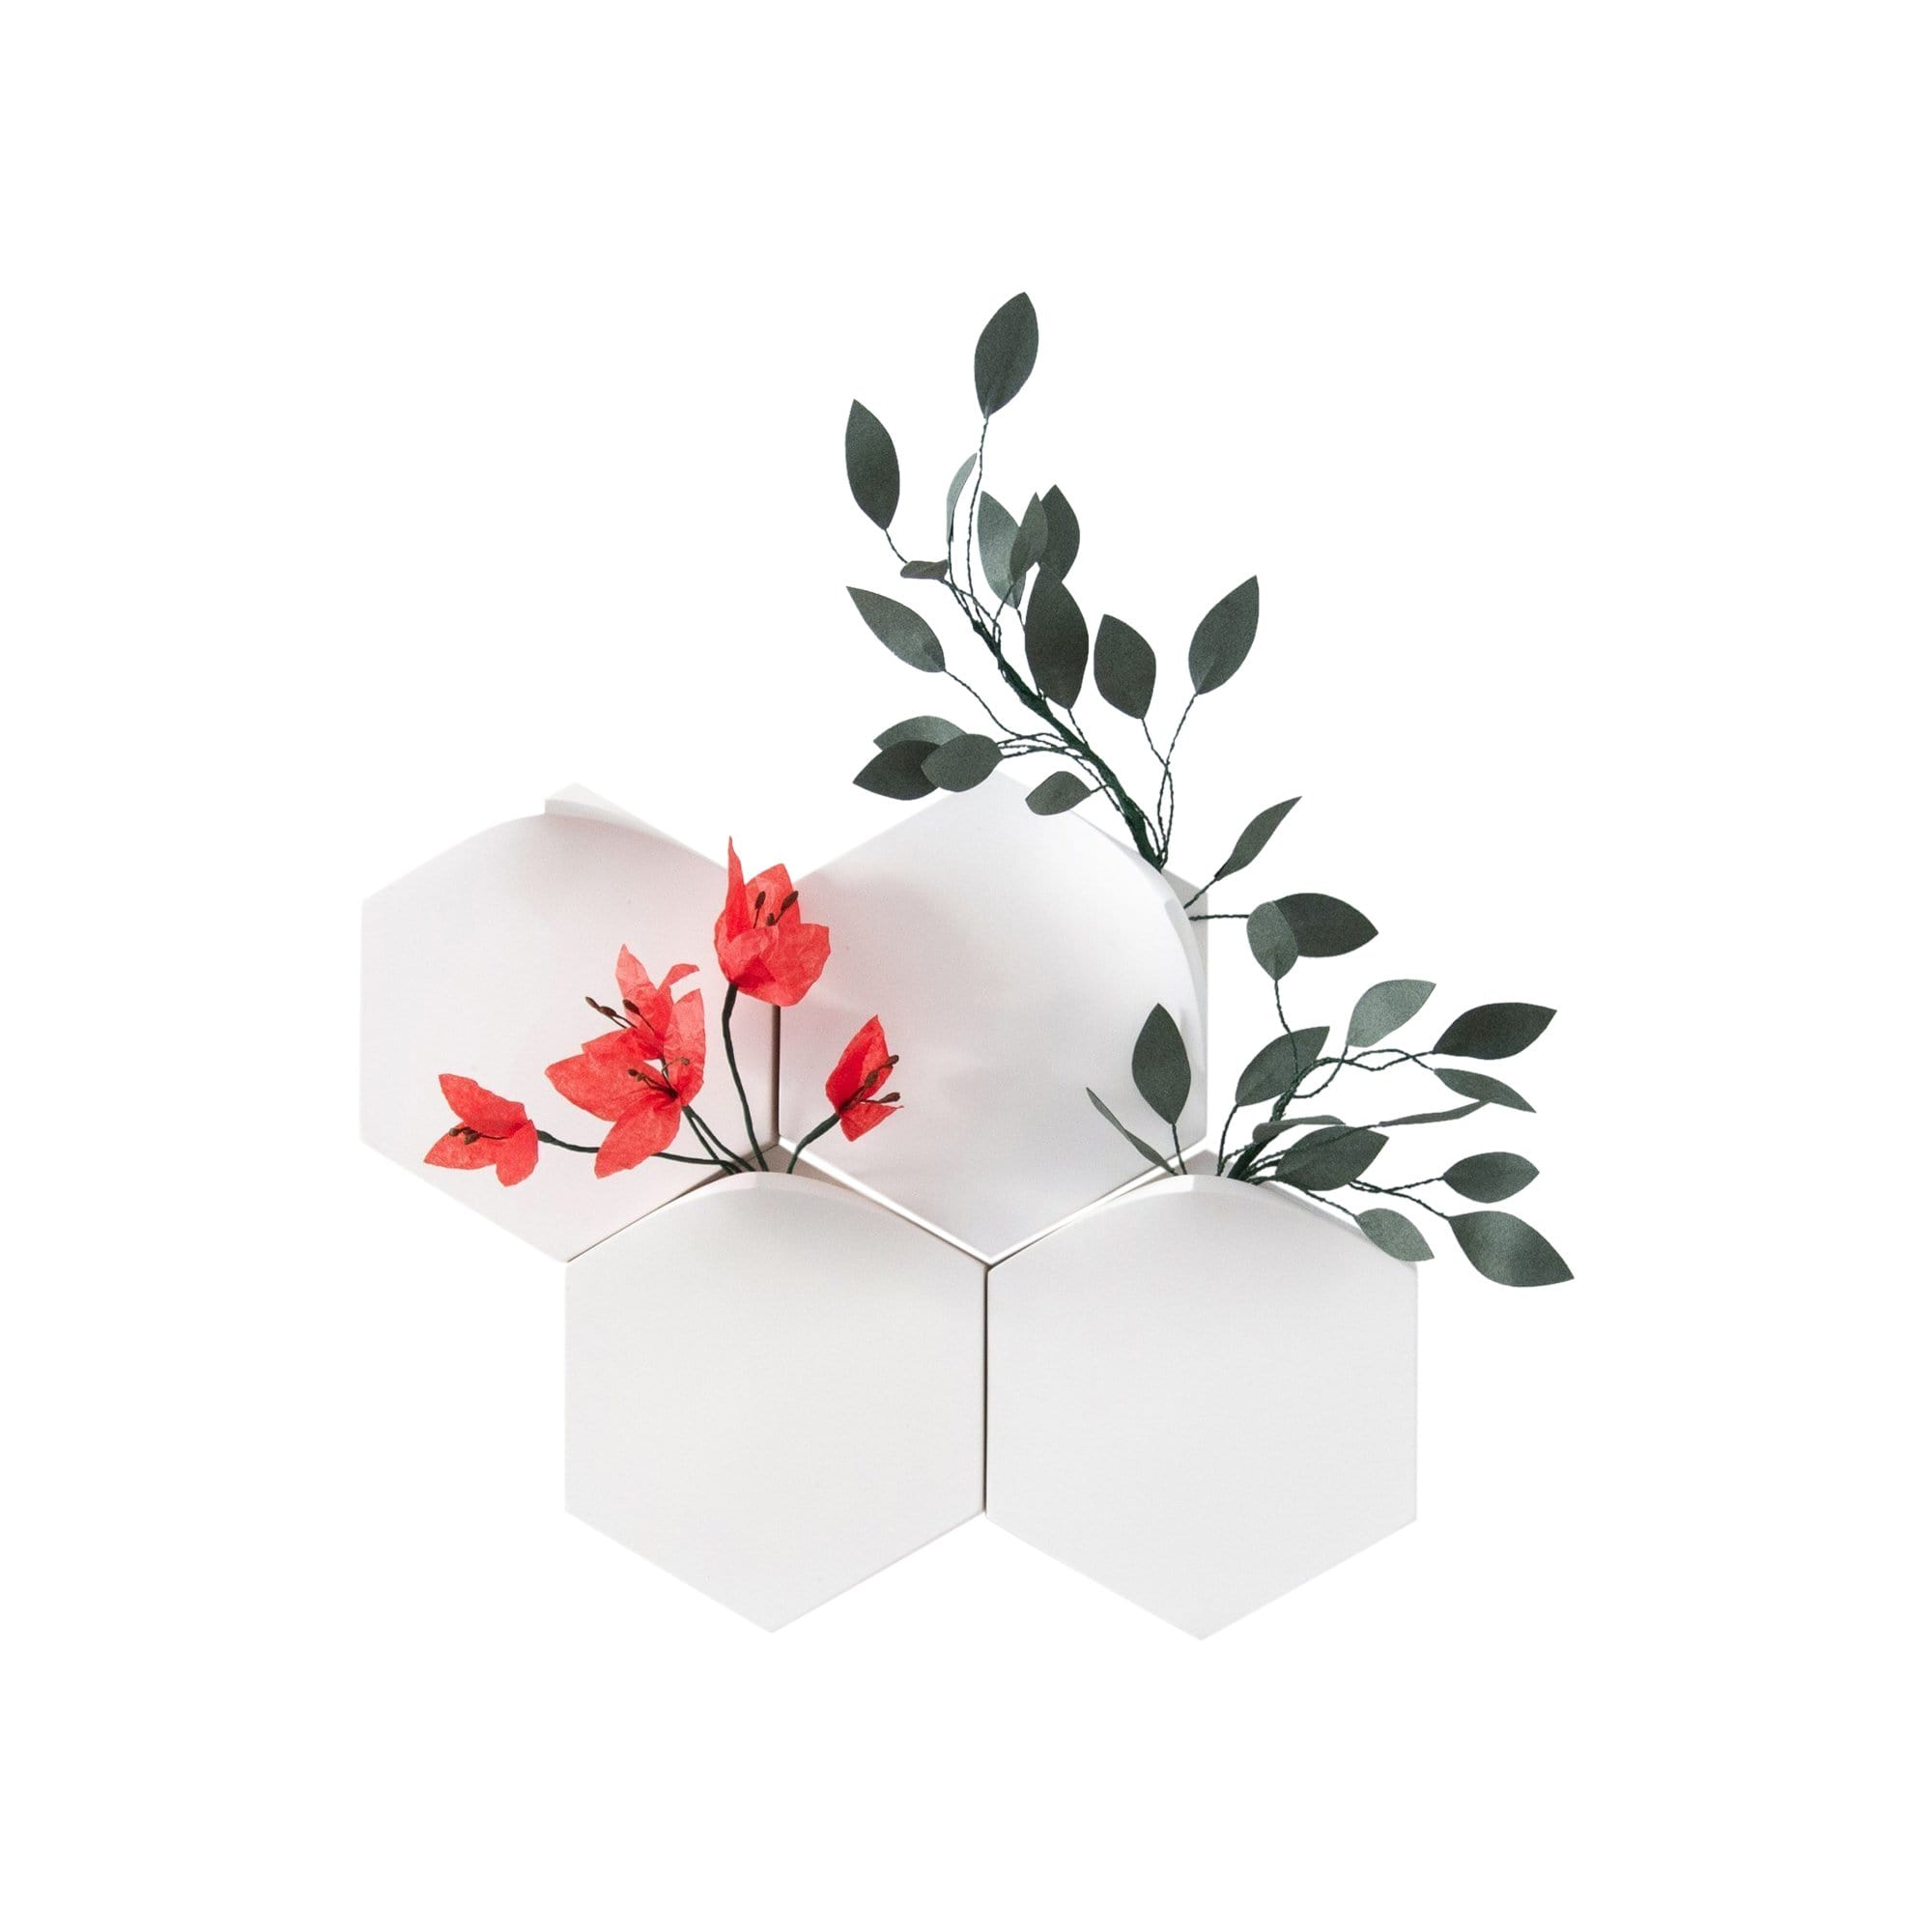 Extra&ordinary Design Wall Decor Hexagonal Wall Mount Vase